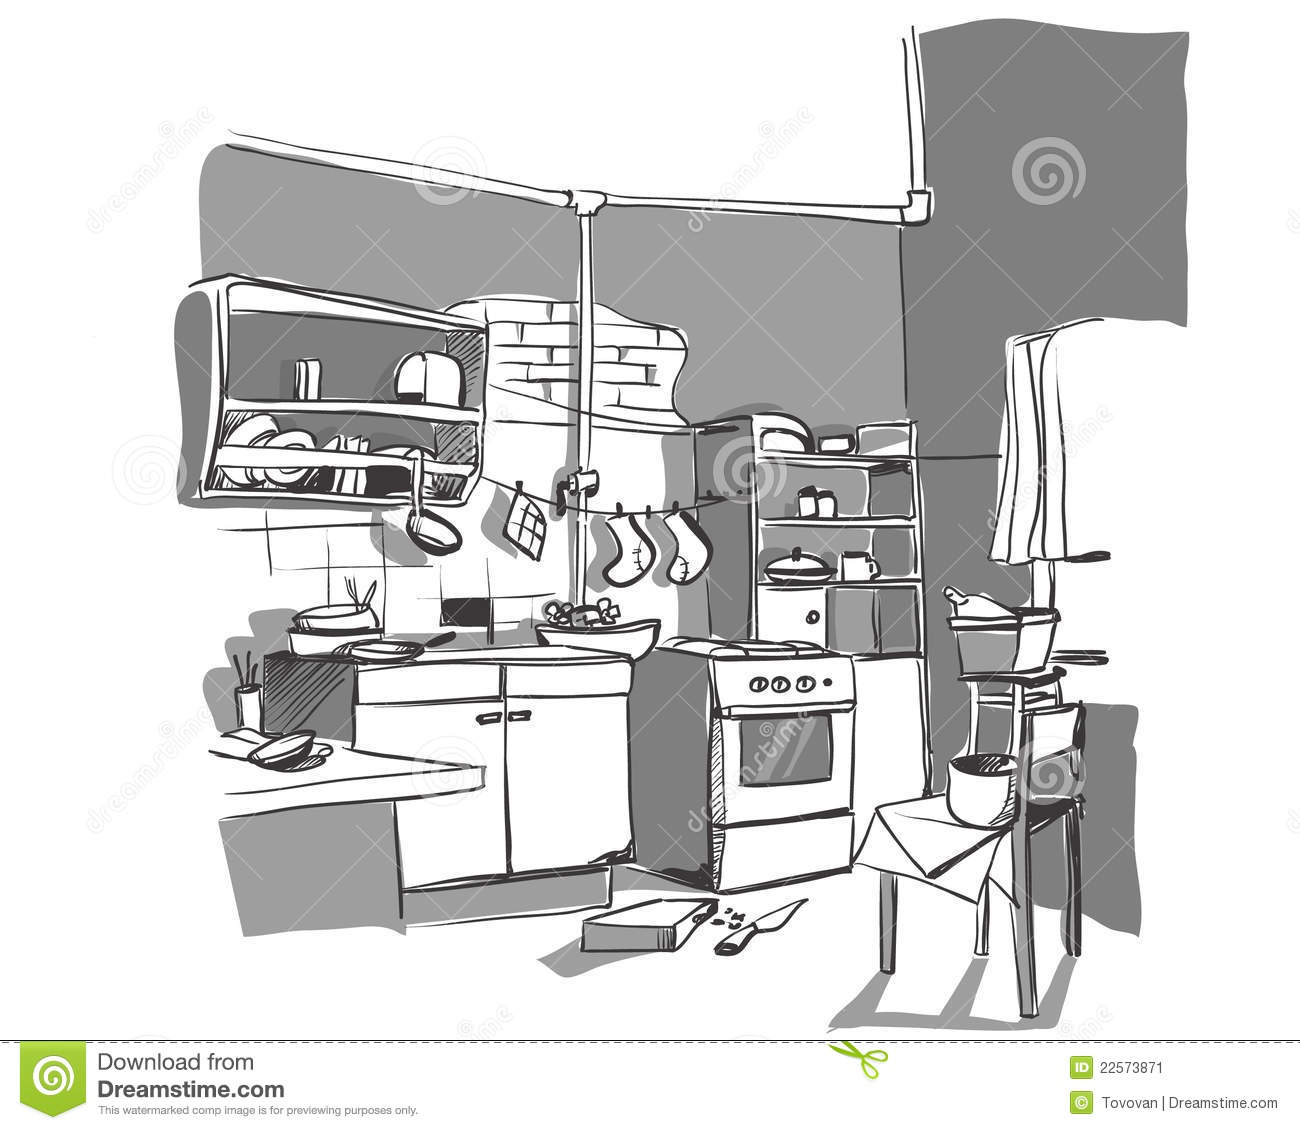 Kitchen Sketch Stock Vector. Illustration Of Disorder